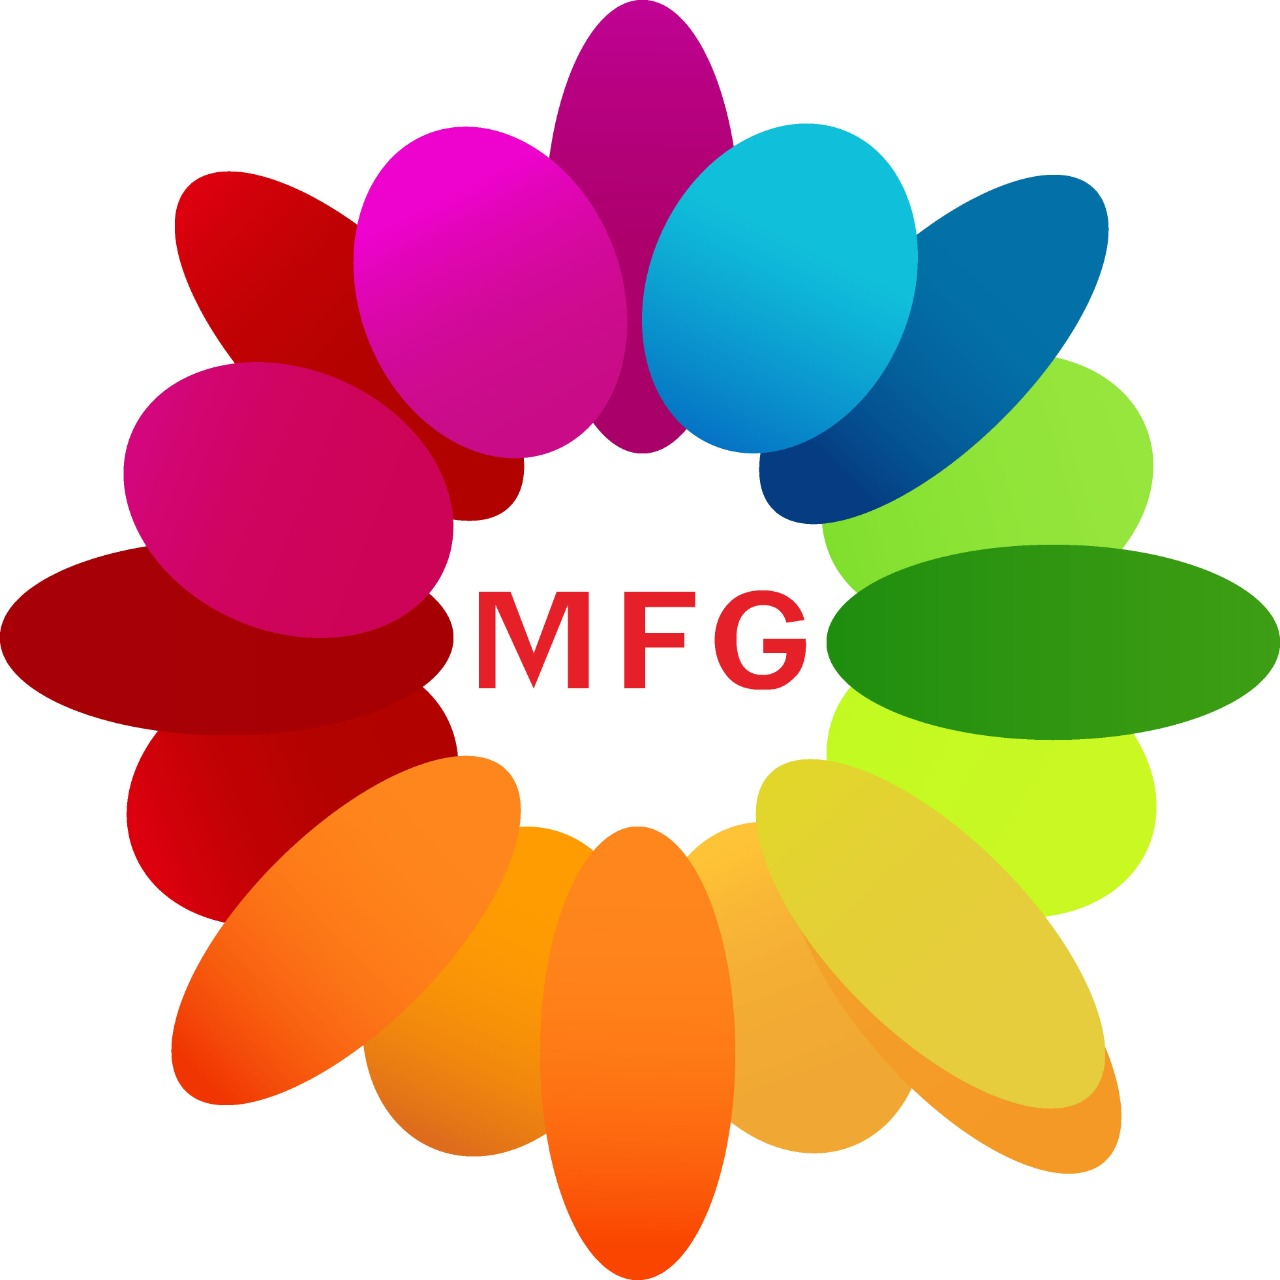 Beautiful teddy bear bouquet of 30 teddy bear with fur and tissue wrapping making it look rich and unique